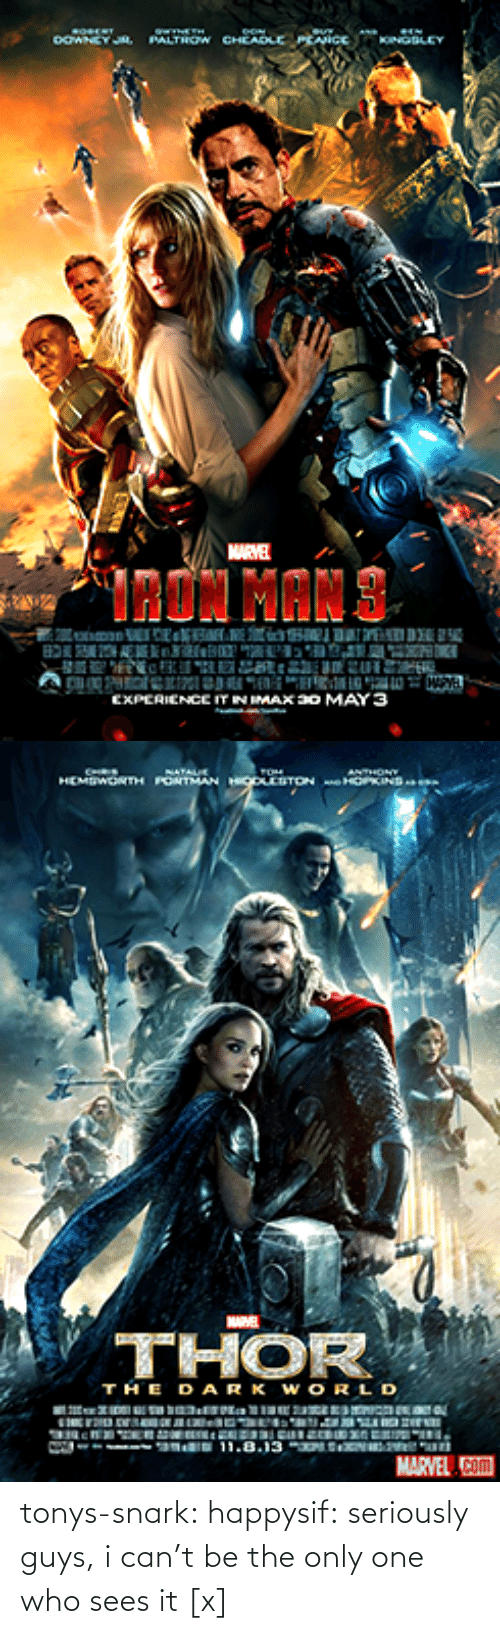 Seriously Guys: ORERT  OOWNEY JA.  PALTHOW CHEADLE PEANCe  KINGBLEY  MARVEL  TRON MAN S  EXPERIENCE ITN IMAX a0 MAY 3   CHRIS  SATAUE  ANTHONY  HEMSWONTH PONTMAN HgOITON e HOPINS  V THOR  THE DARK WORLD  11.8.13 N un  MARVEL Com tonys-snark:  happysif:  seriously guys, i can't be the only one who sees it   [x]